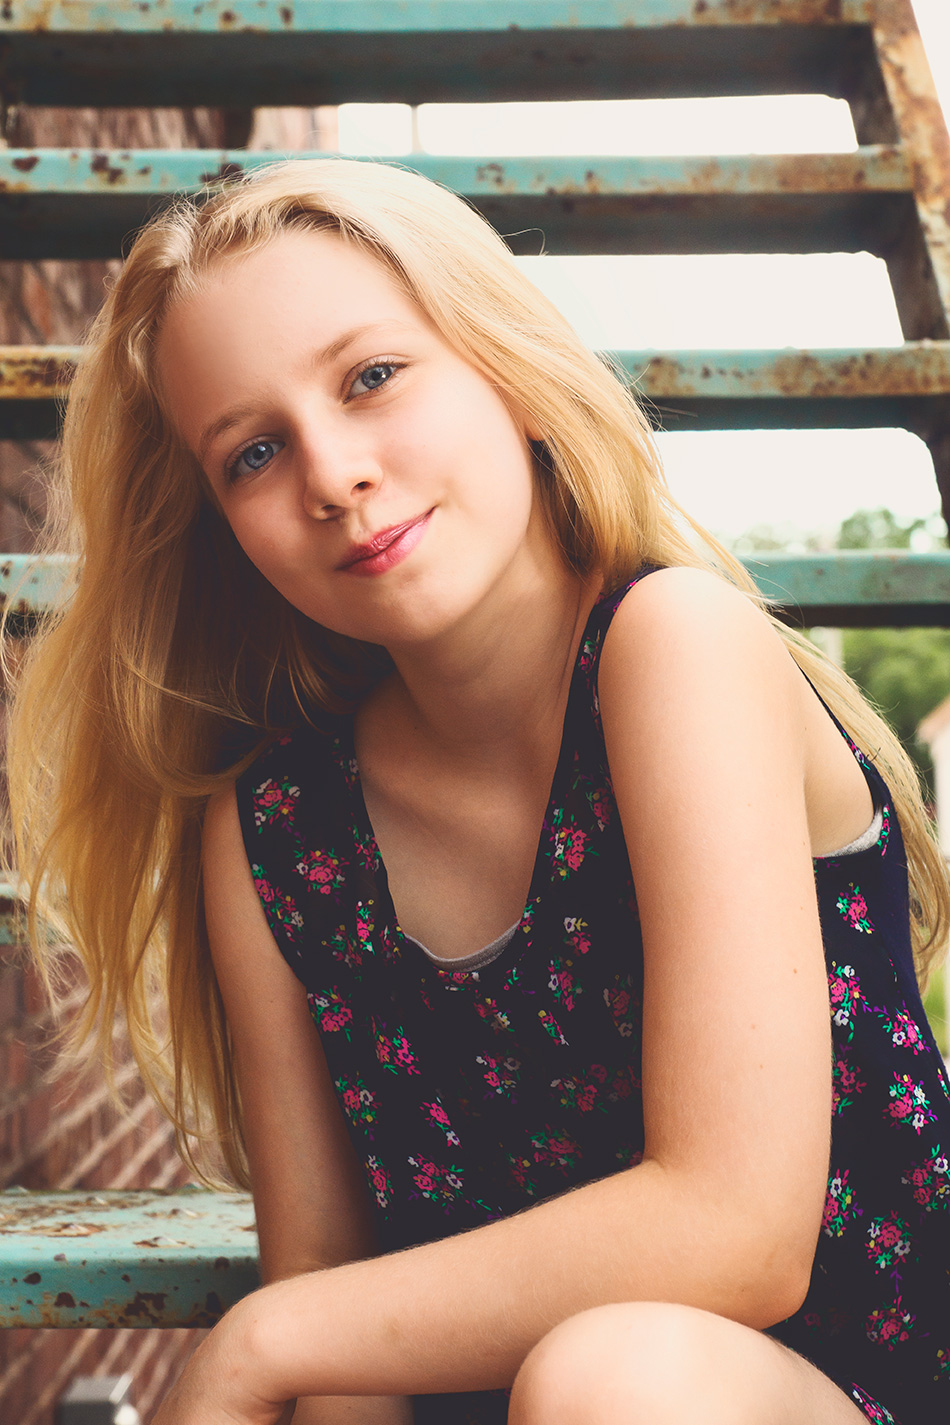 Blonde girl sitting on stairs